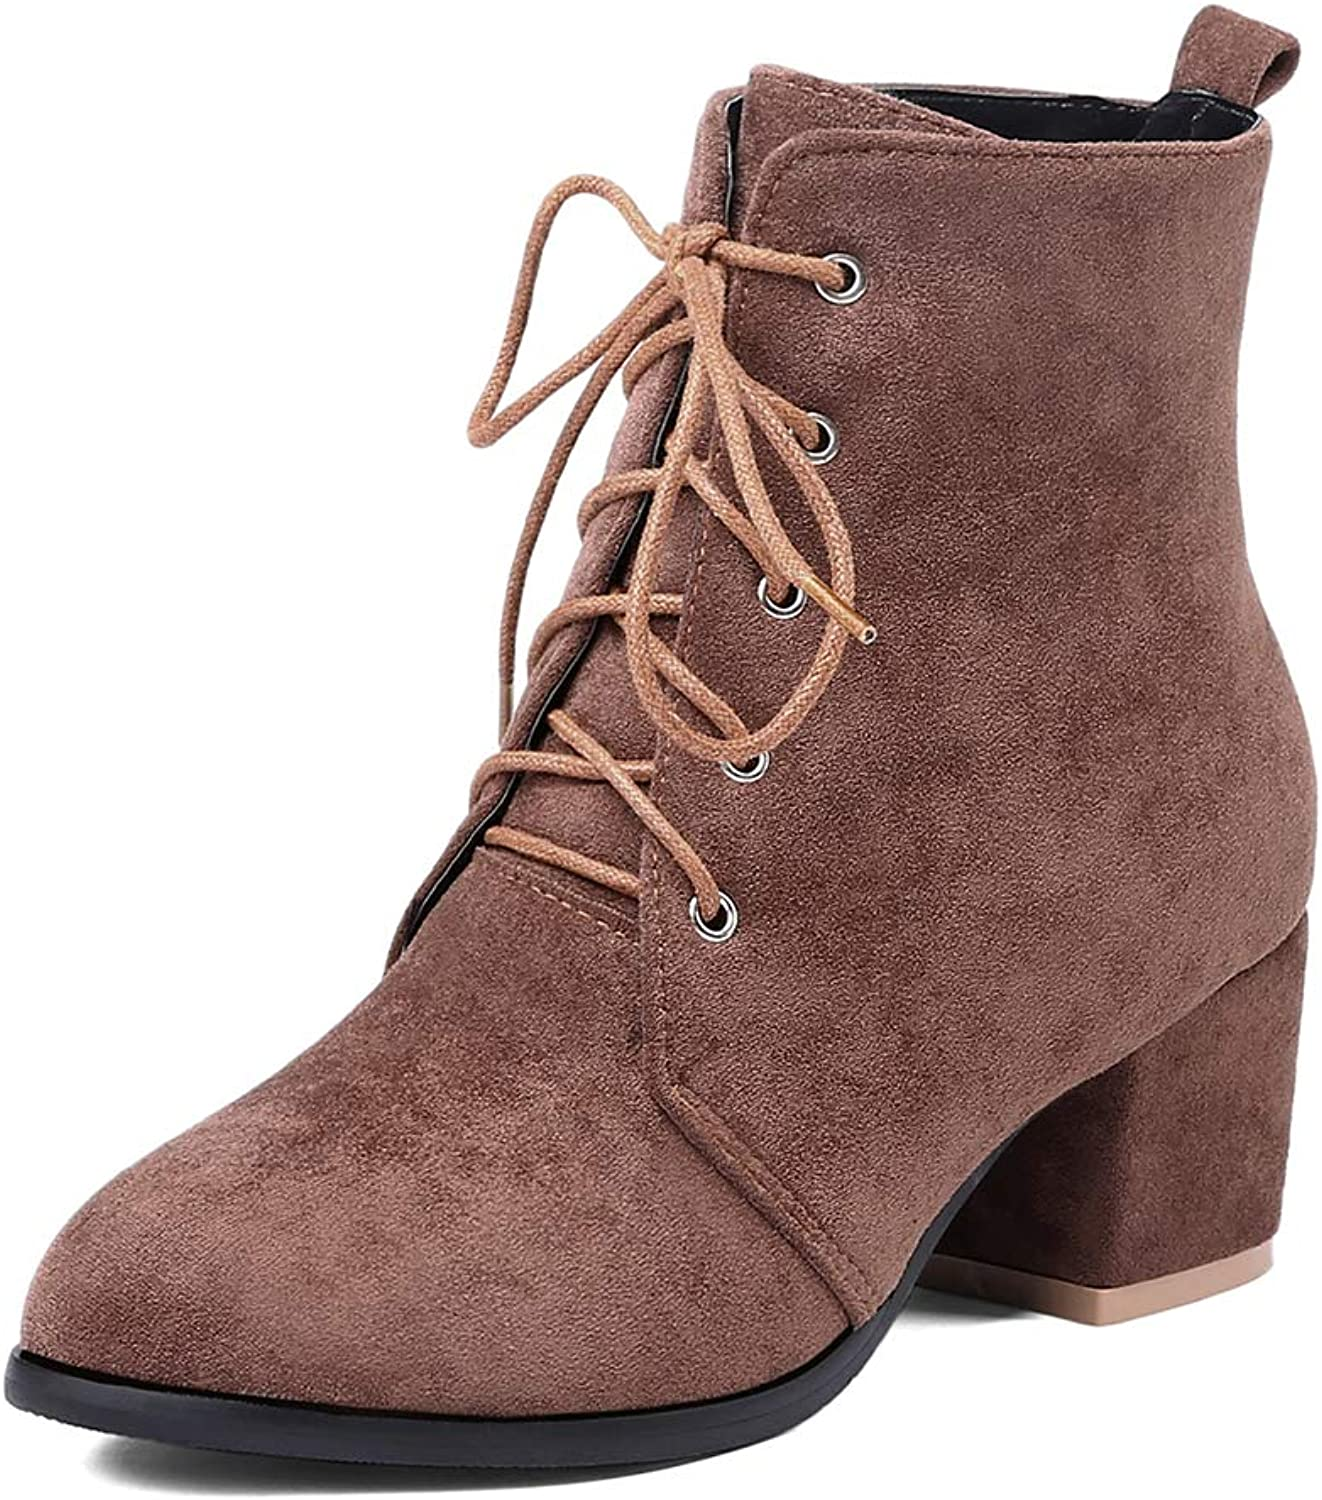 BIGTREE Women Ankle Boots Fur Lined Chunky Heel Suede Lace up Fashion Booties